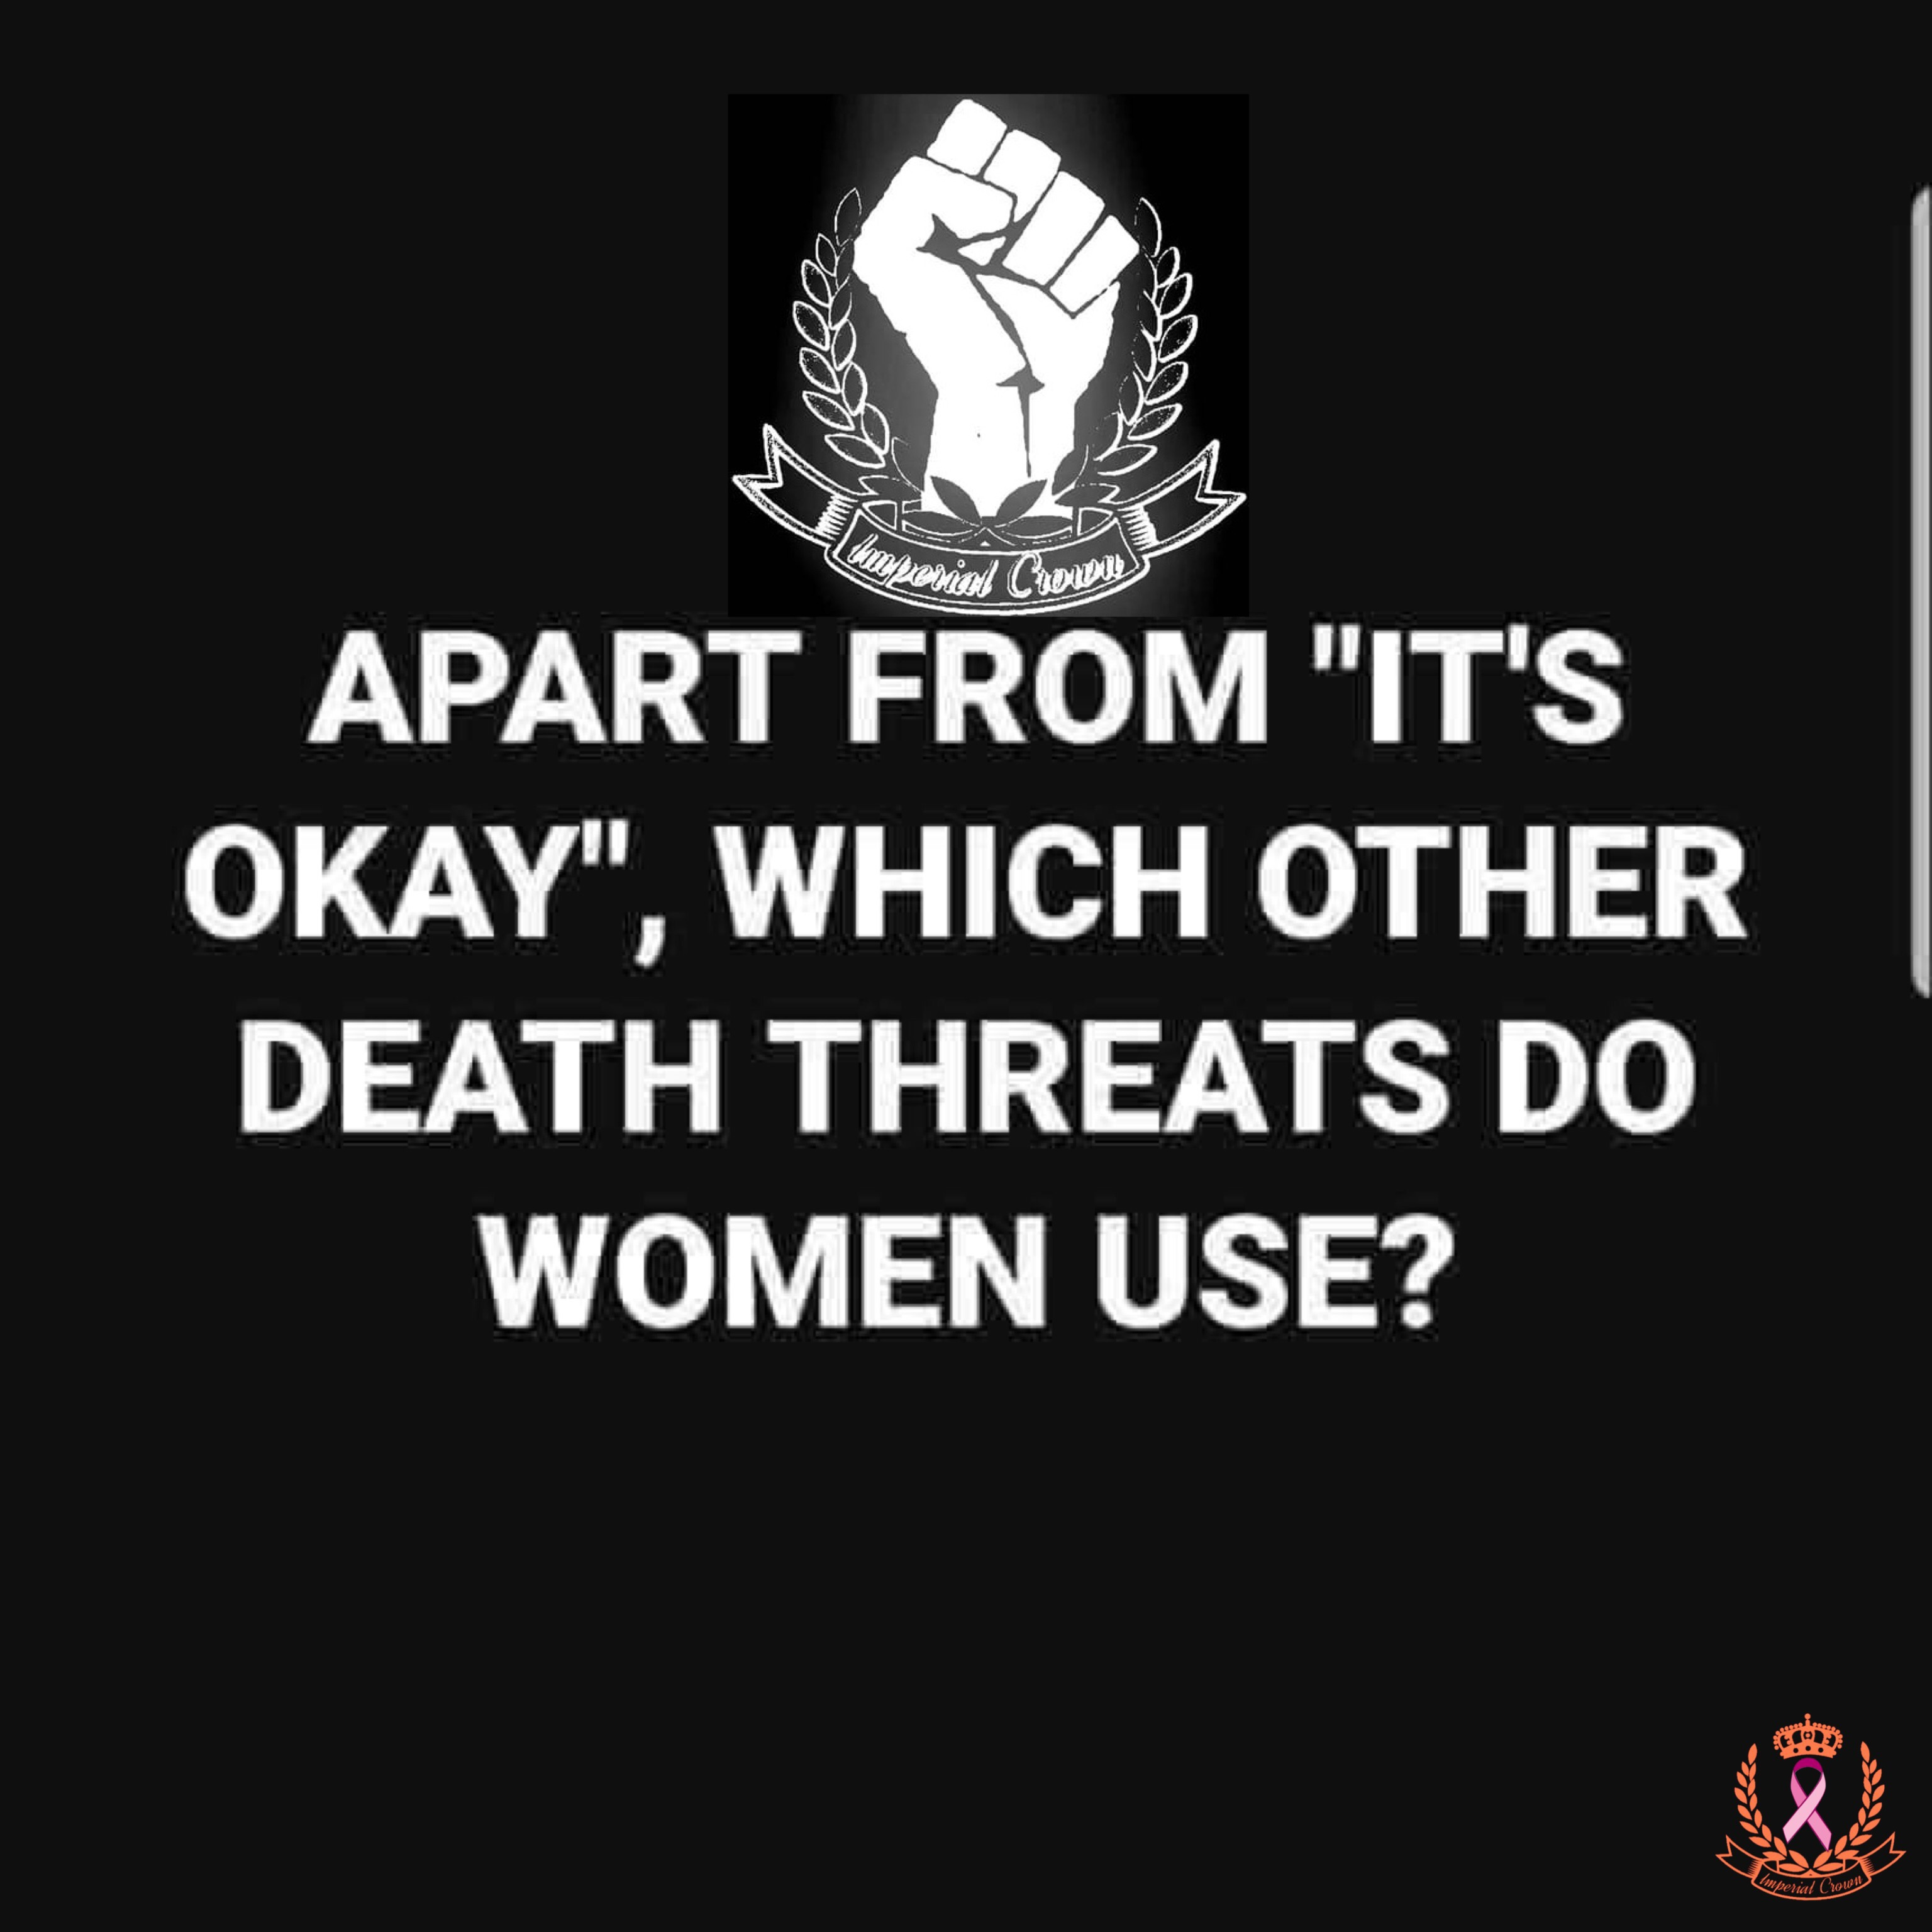 Apart from it's okay which other death threats do women use